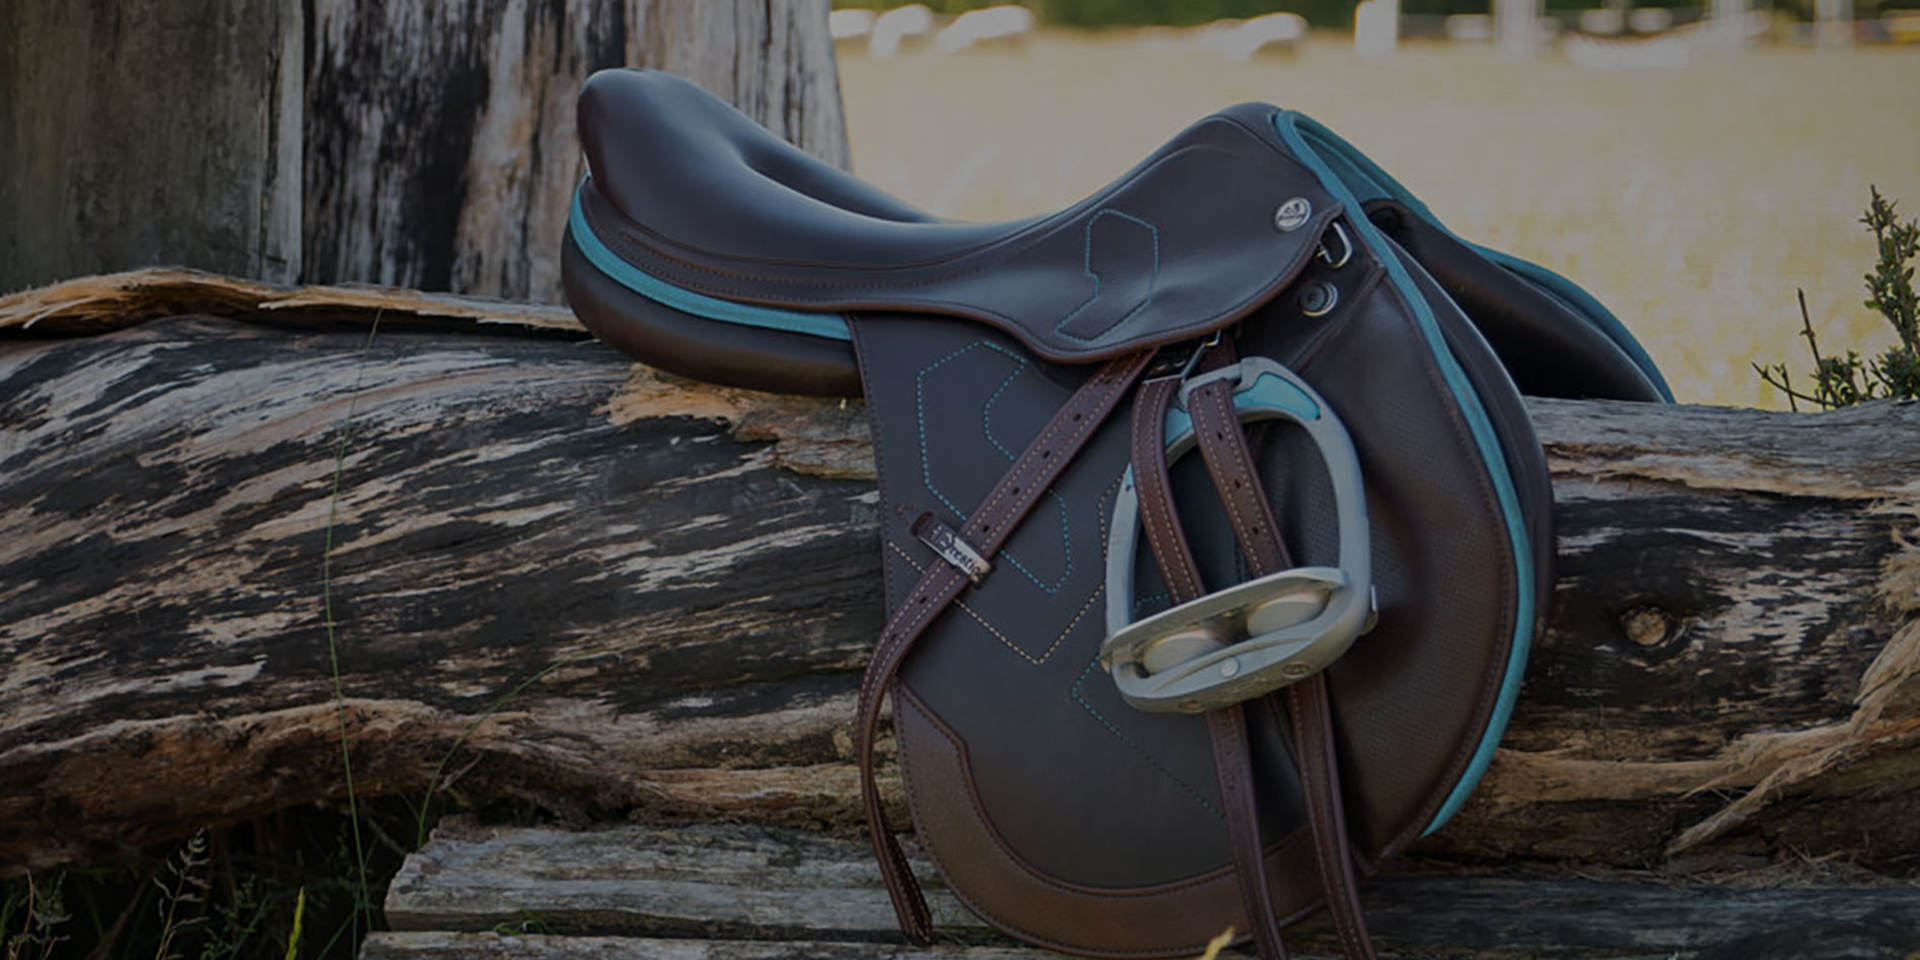 Saddle Josi | New Saddles & Saddle Fitting Services Auckland